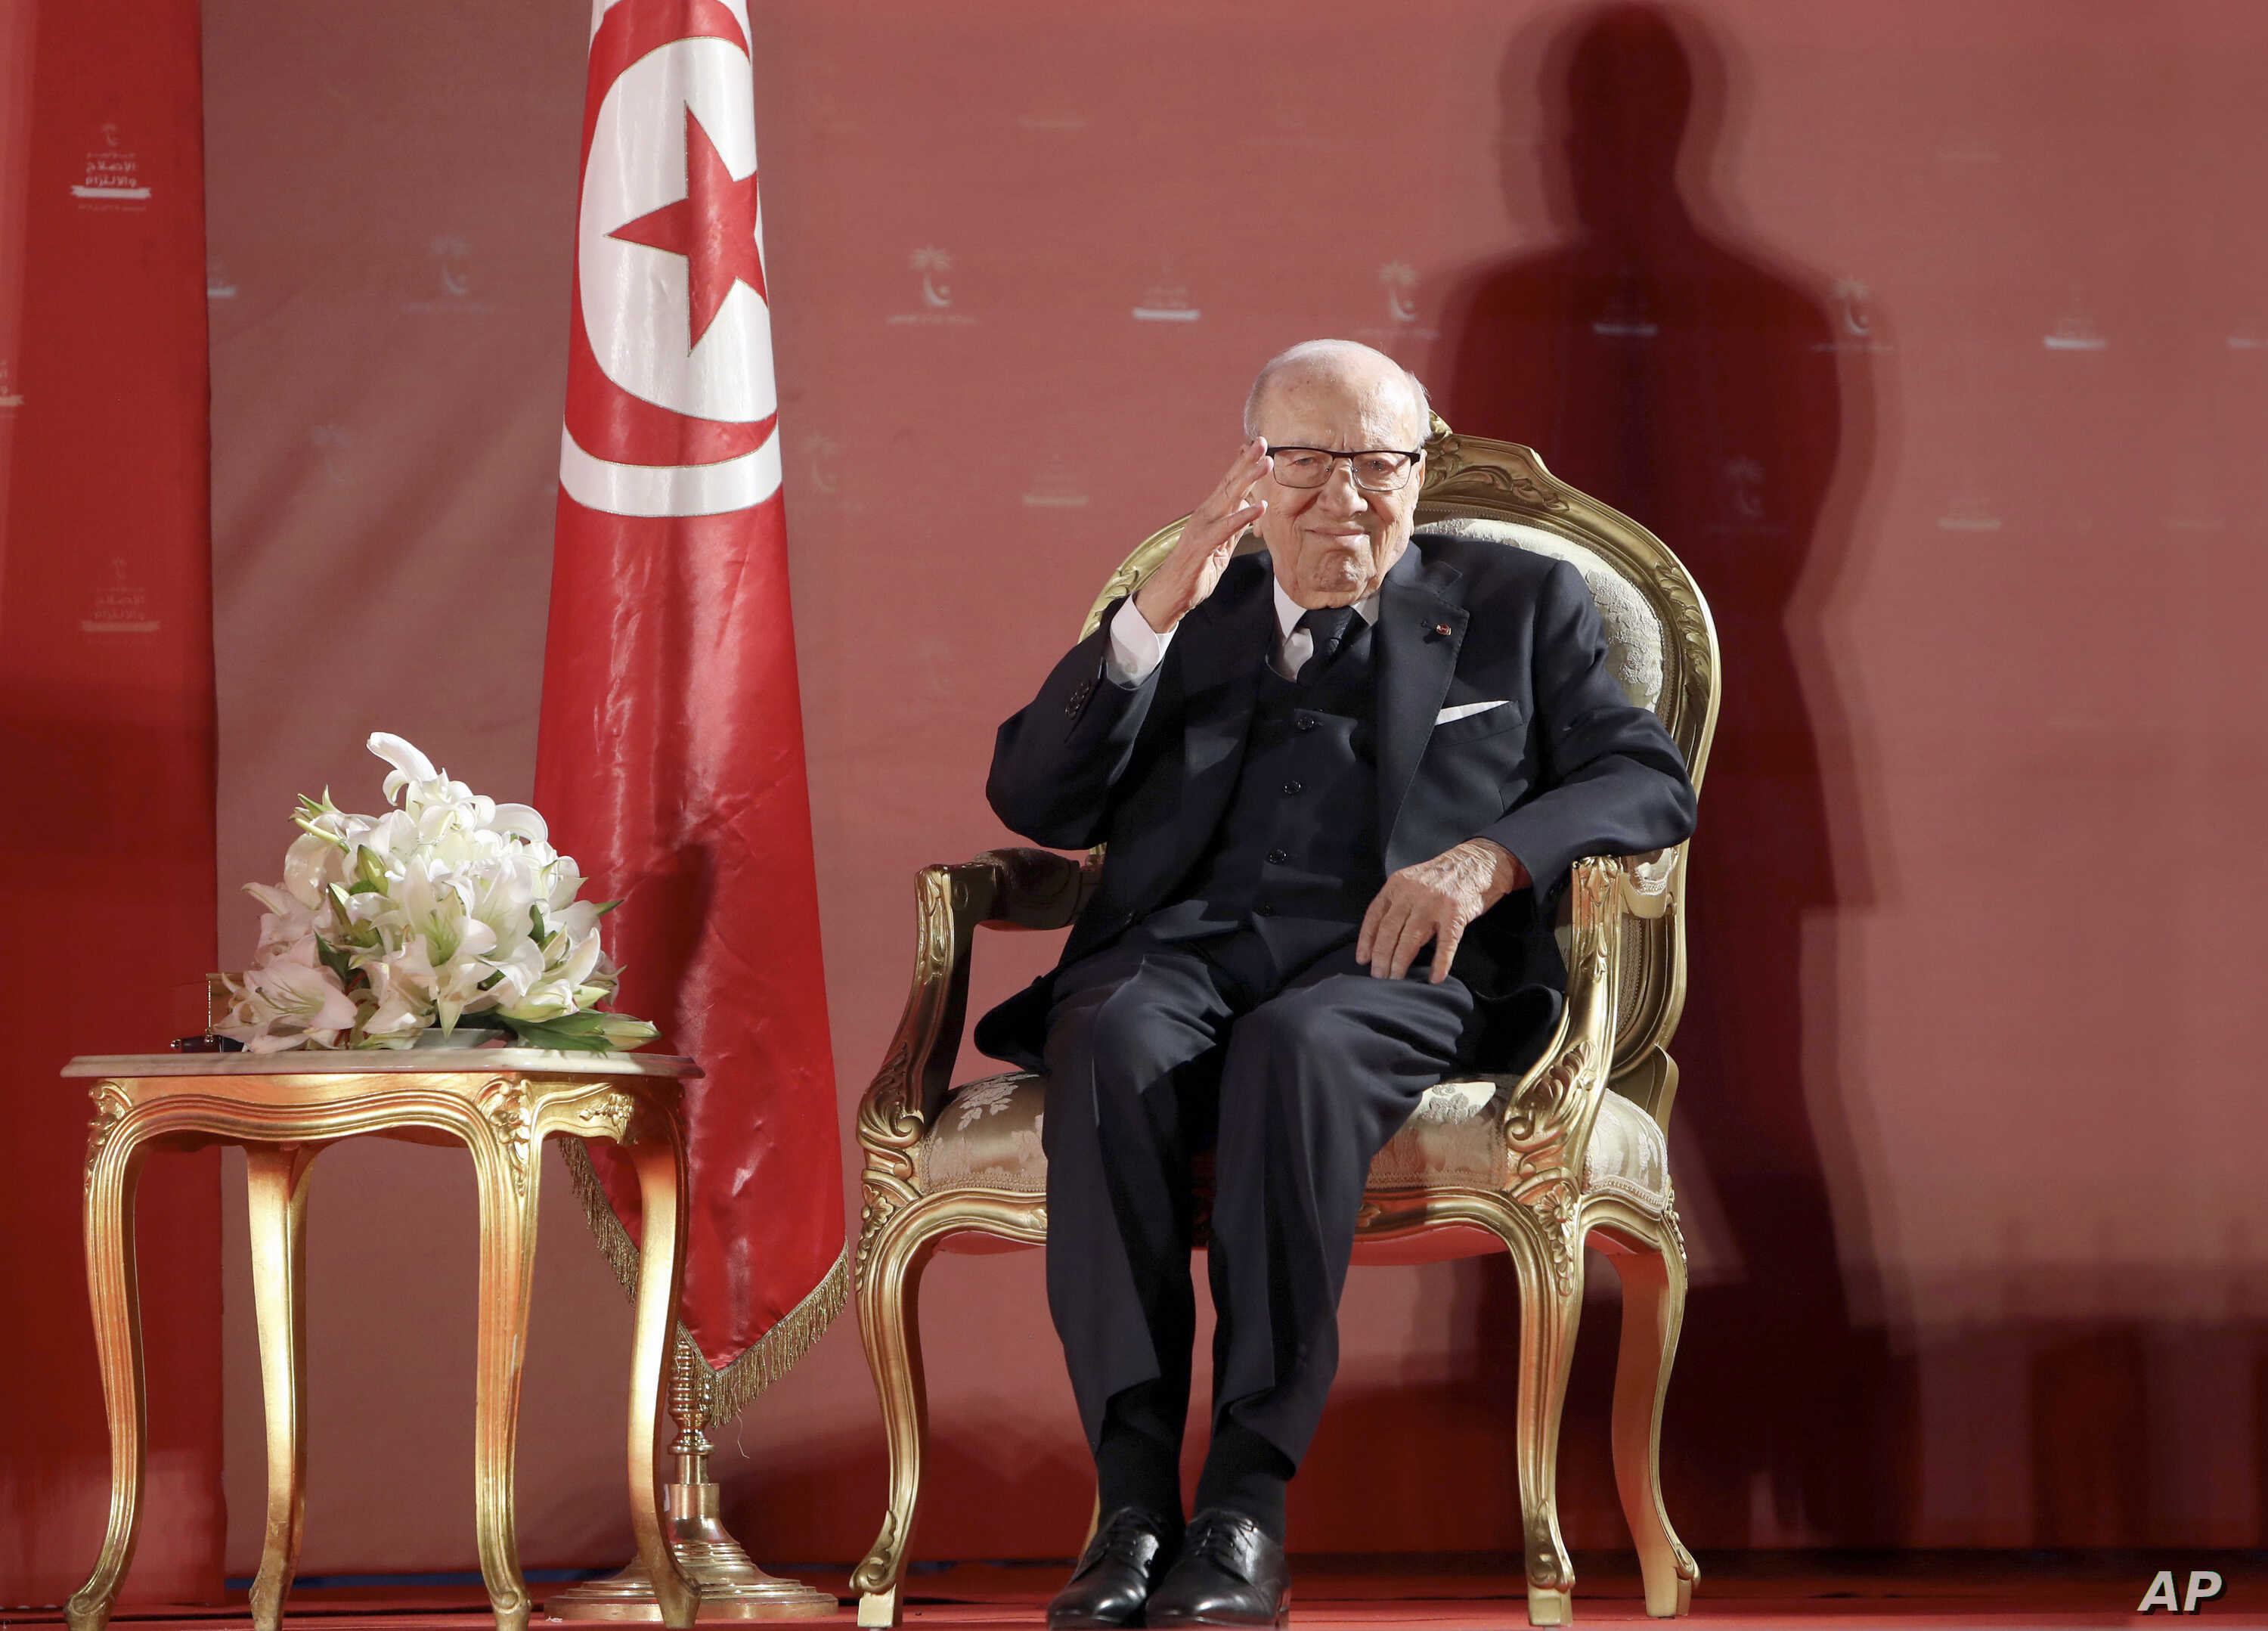 President 'seriously ill' as attacks rock Tunisia capital